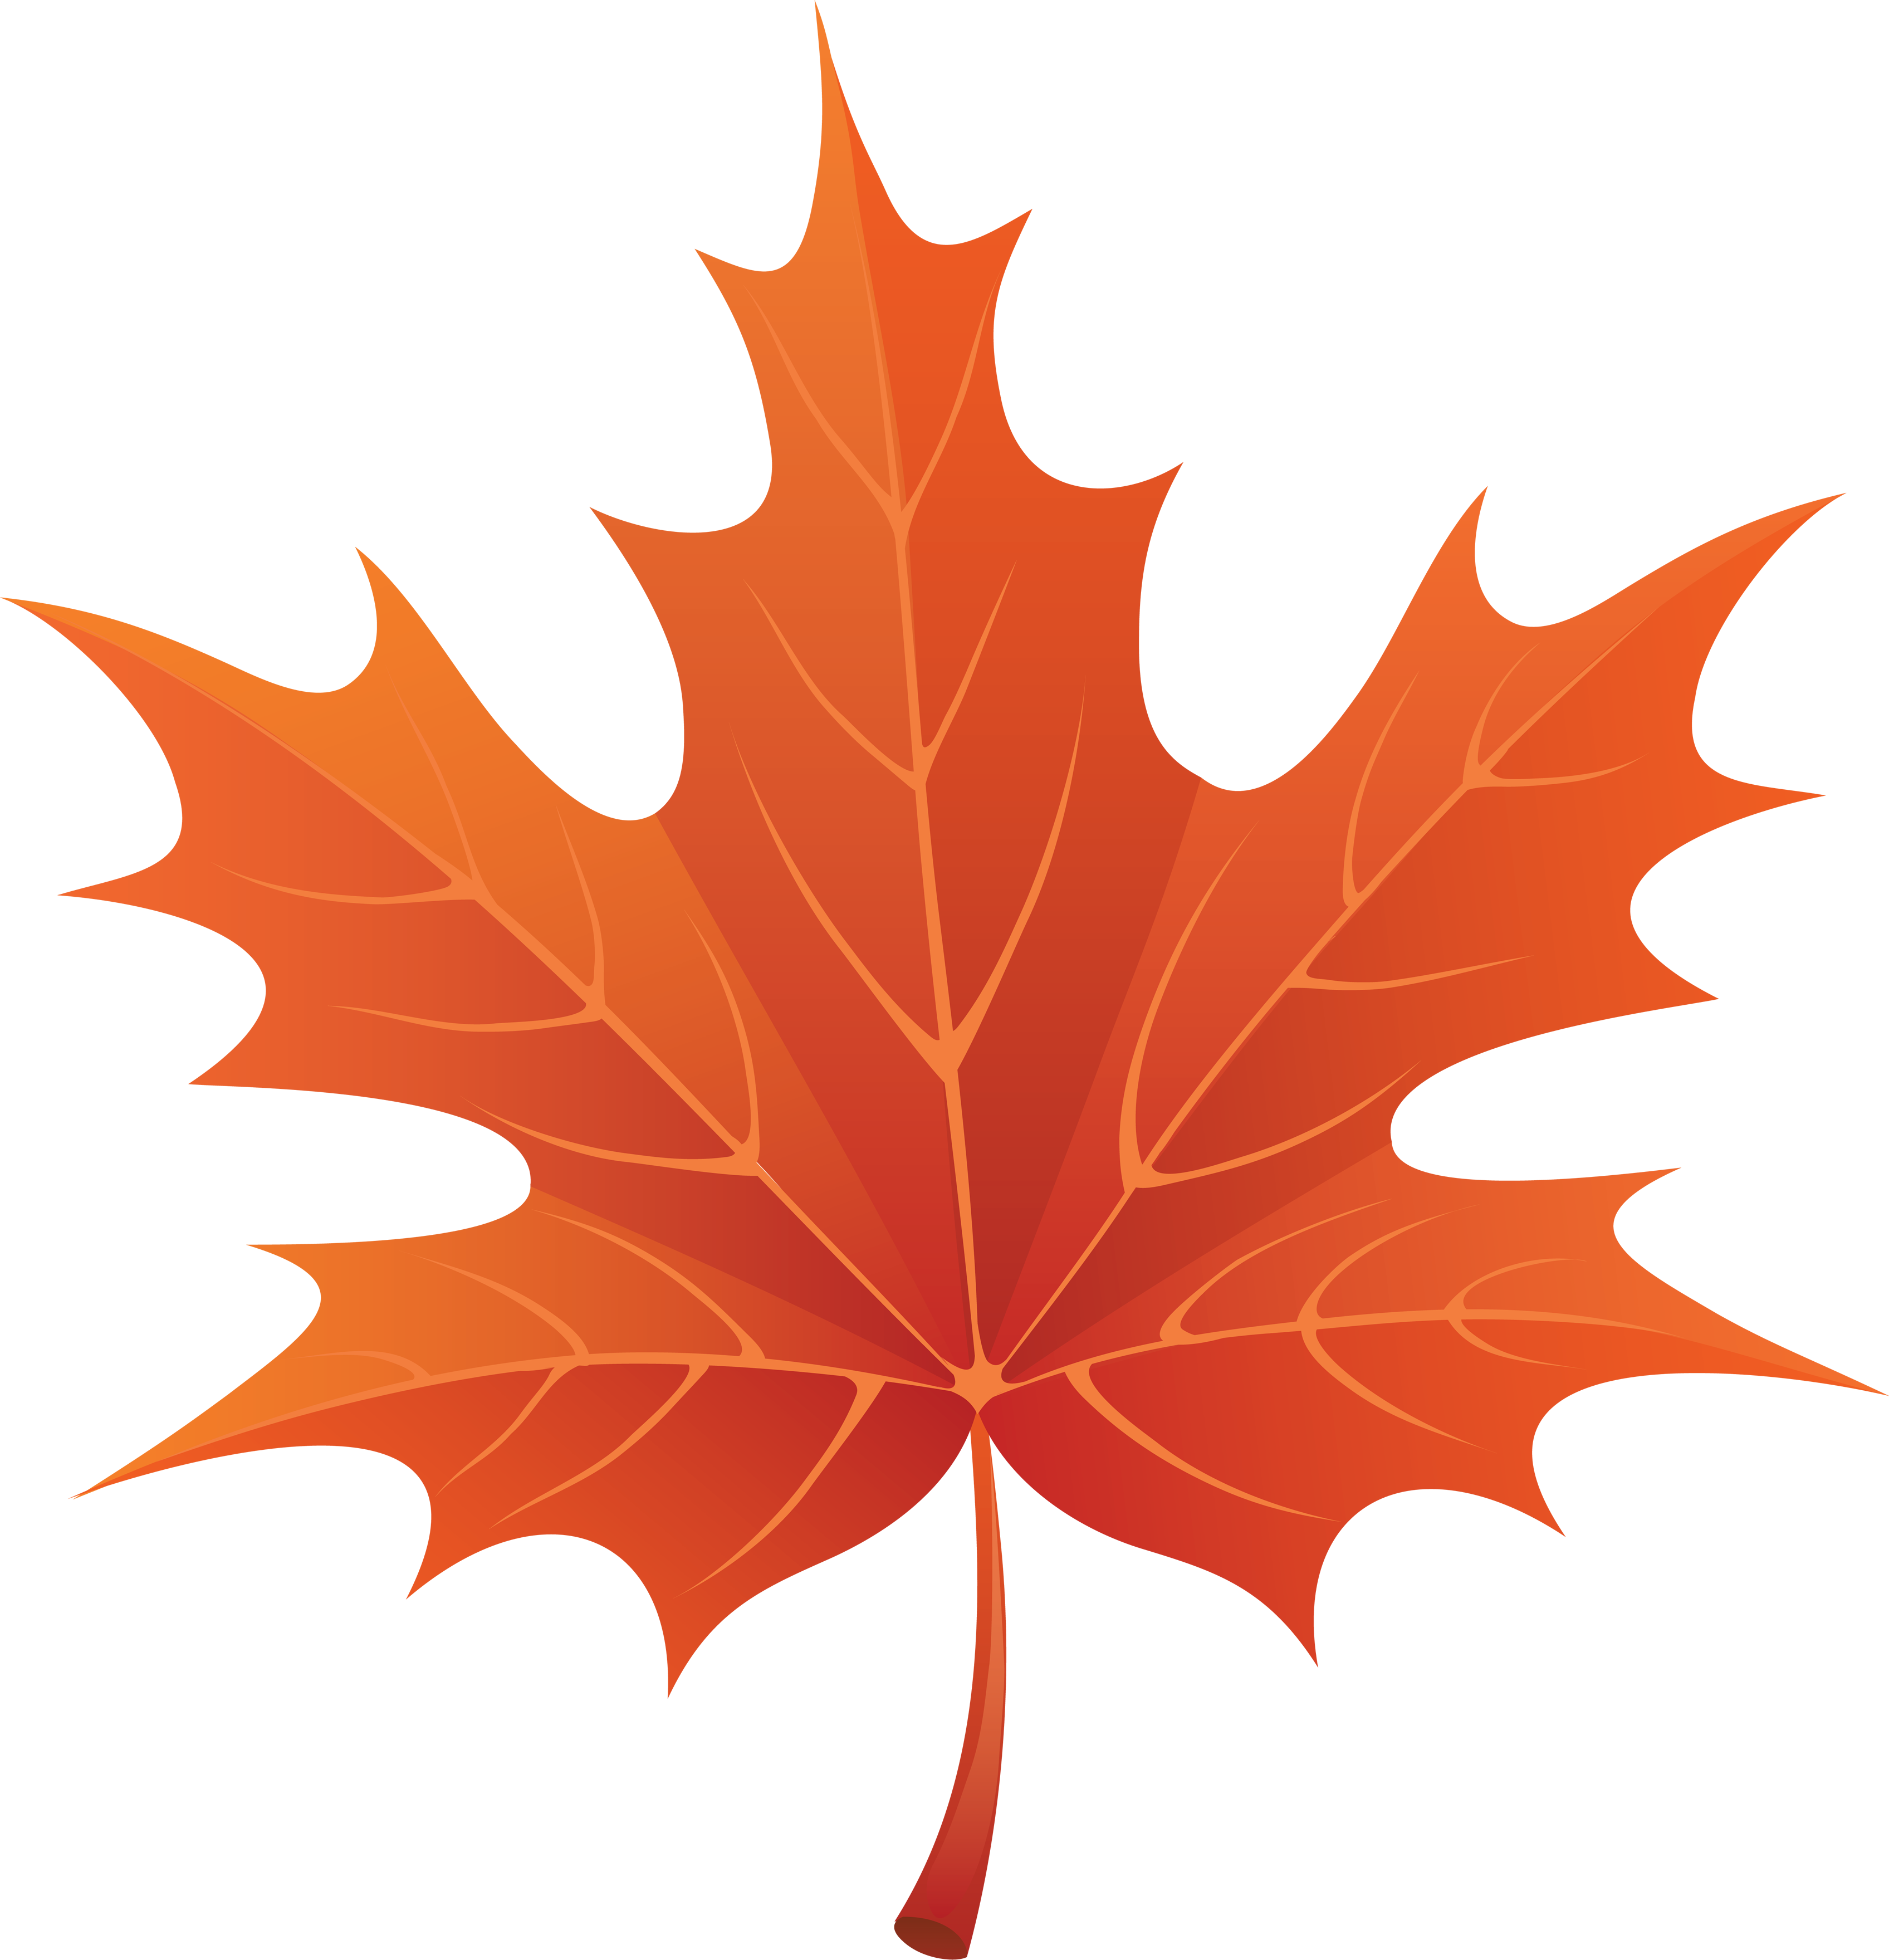 Yellow leaves clipart picture royalty free Fall leaves autumn leaves images free yellow leaves pictures clip ... picture royalty free